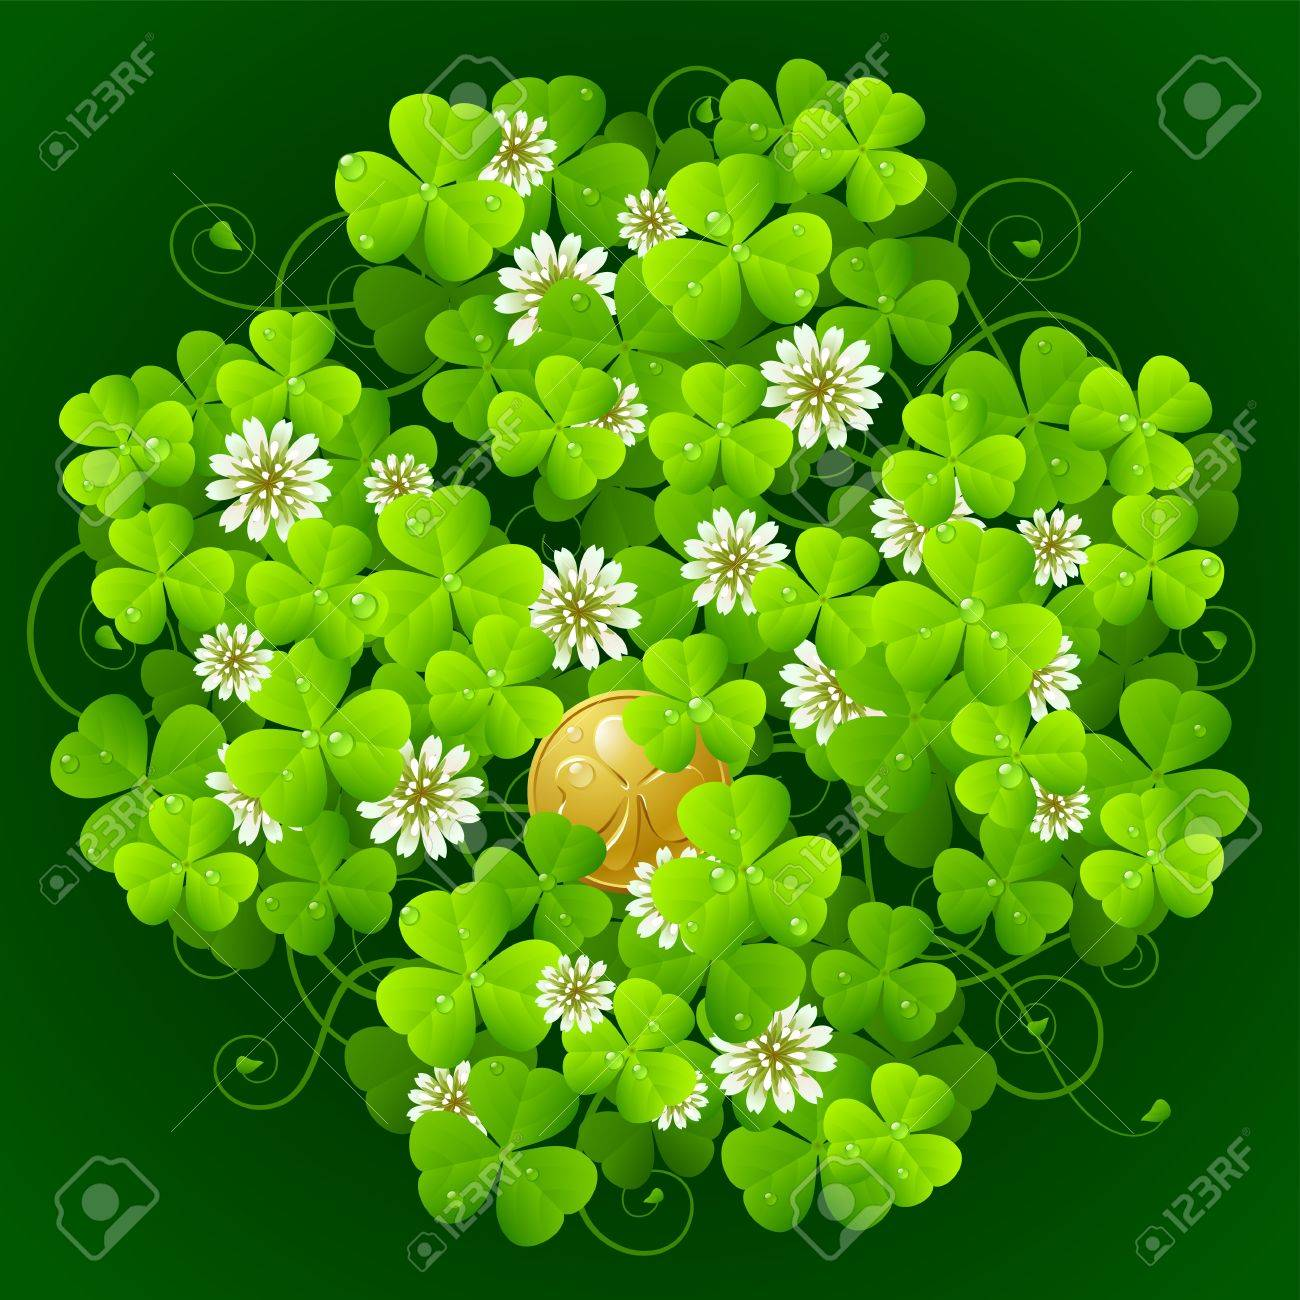 0caf6bda1071 Clover Glade In The Shape Of Quatrefoil Royalty Free Cliparts ...